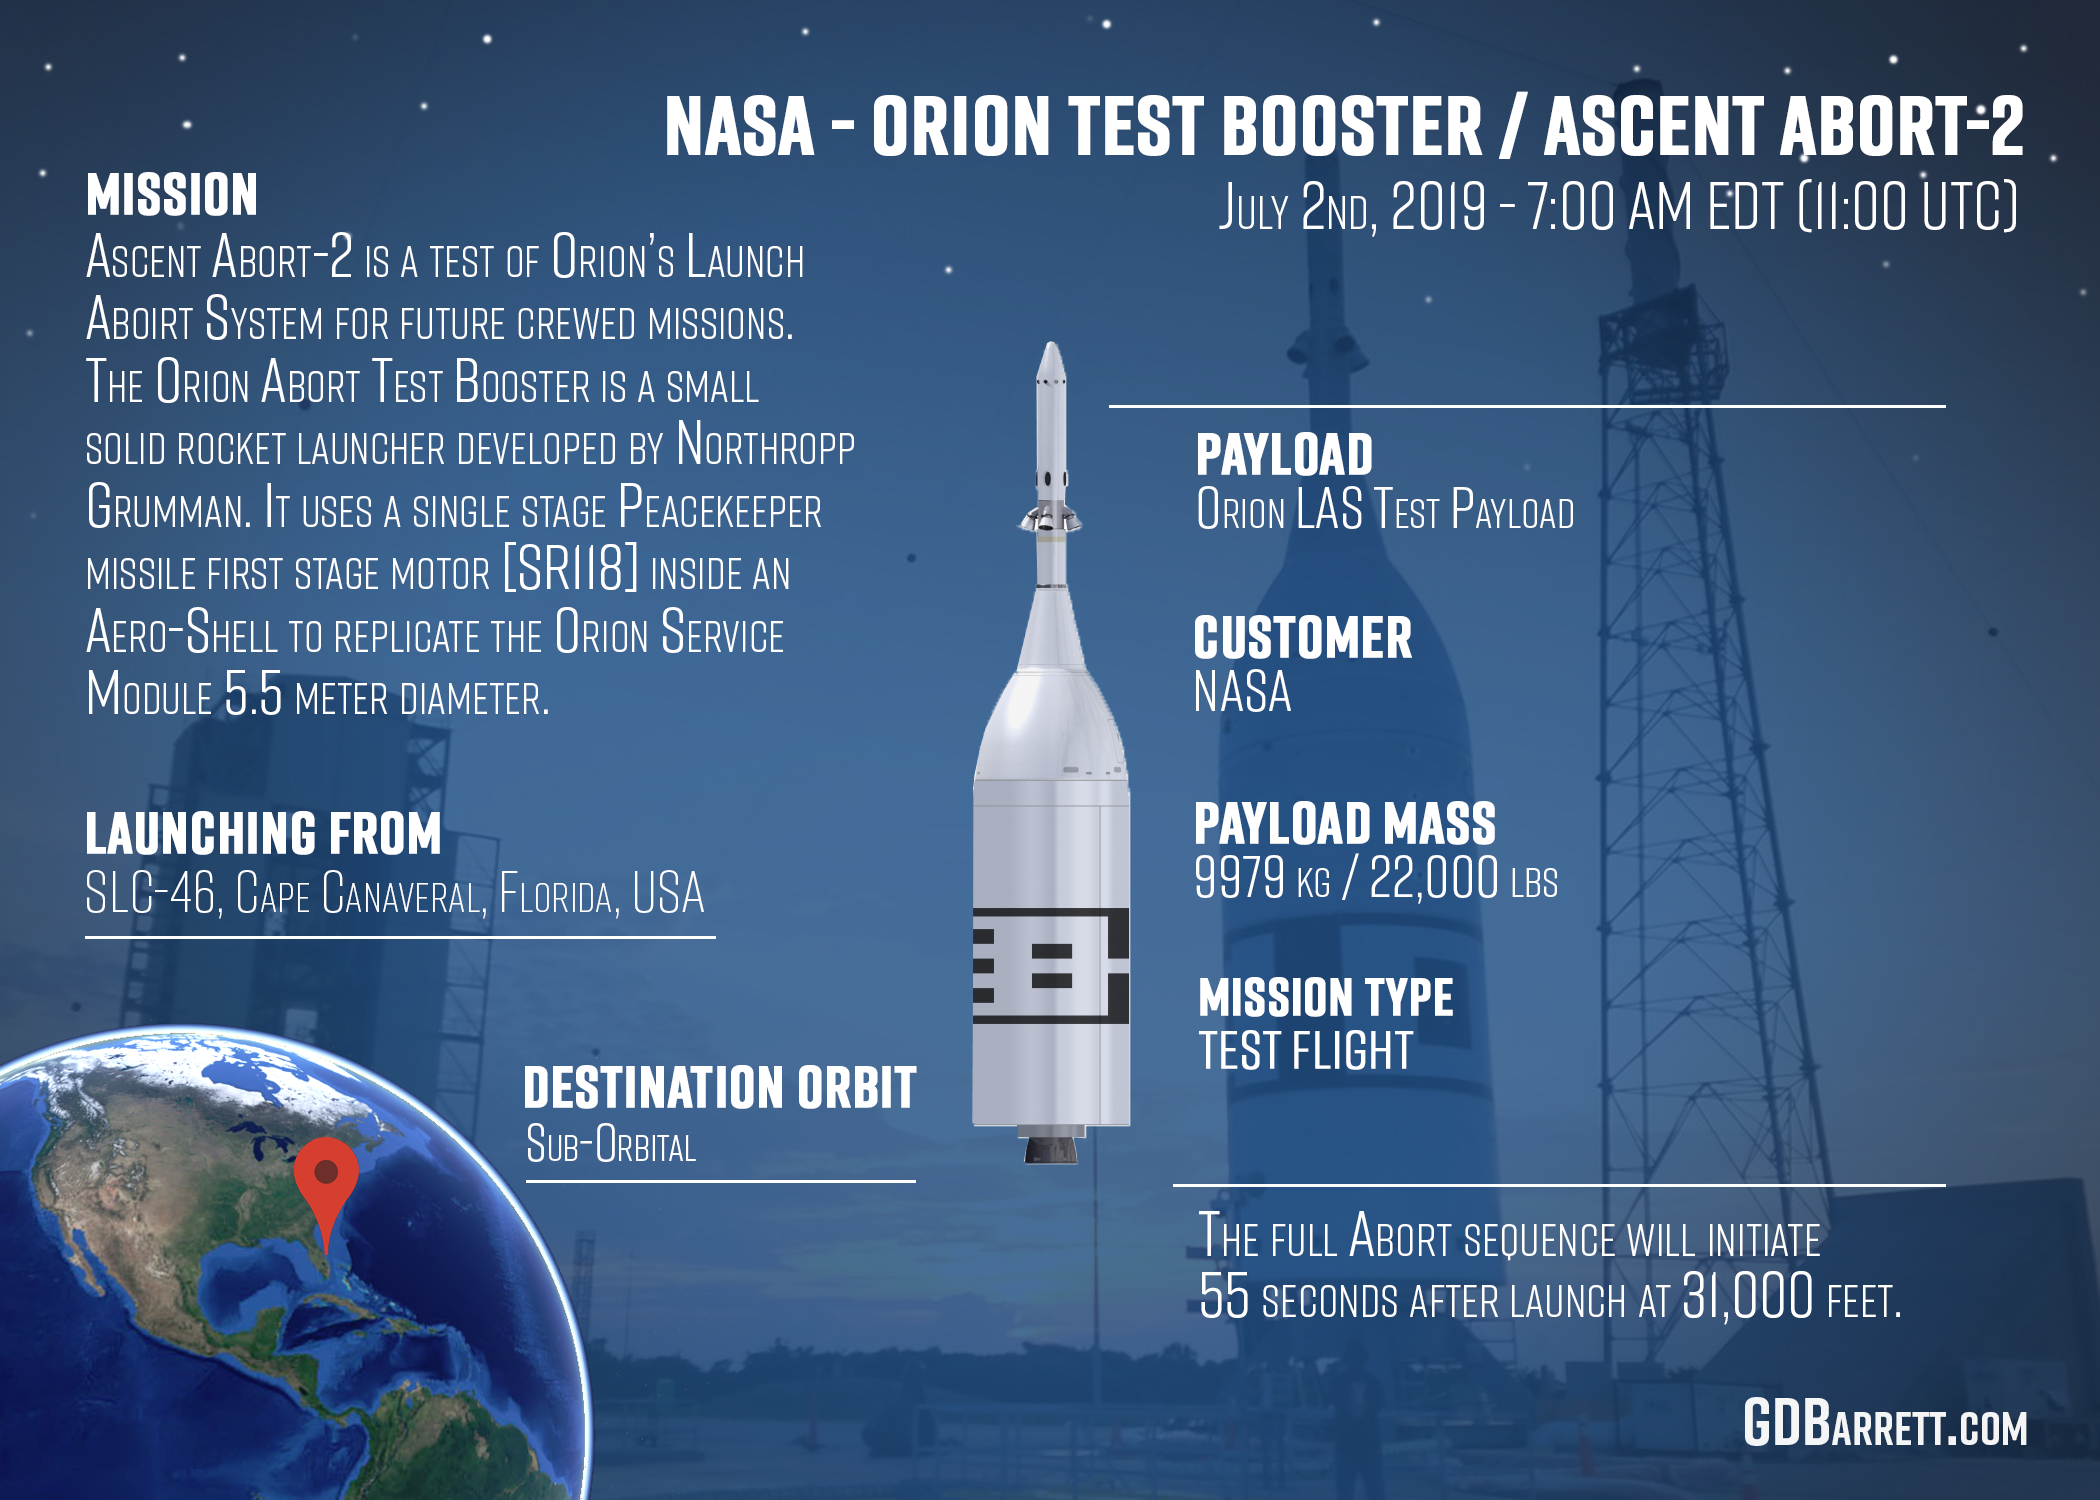 NASA Orion Test / Ascent Abort-2